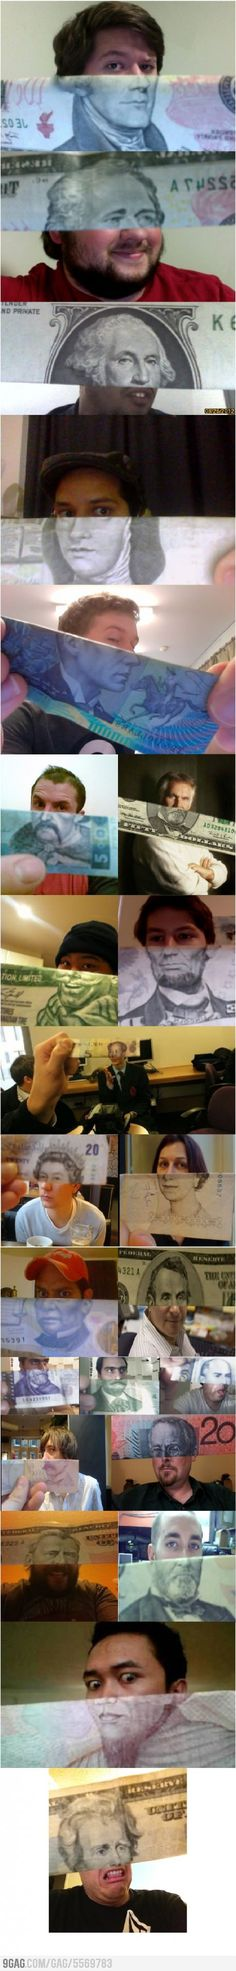 Funny money face mashups, the one at the bottom looks like gary buesey